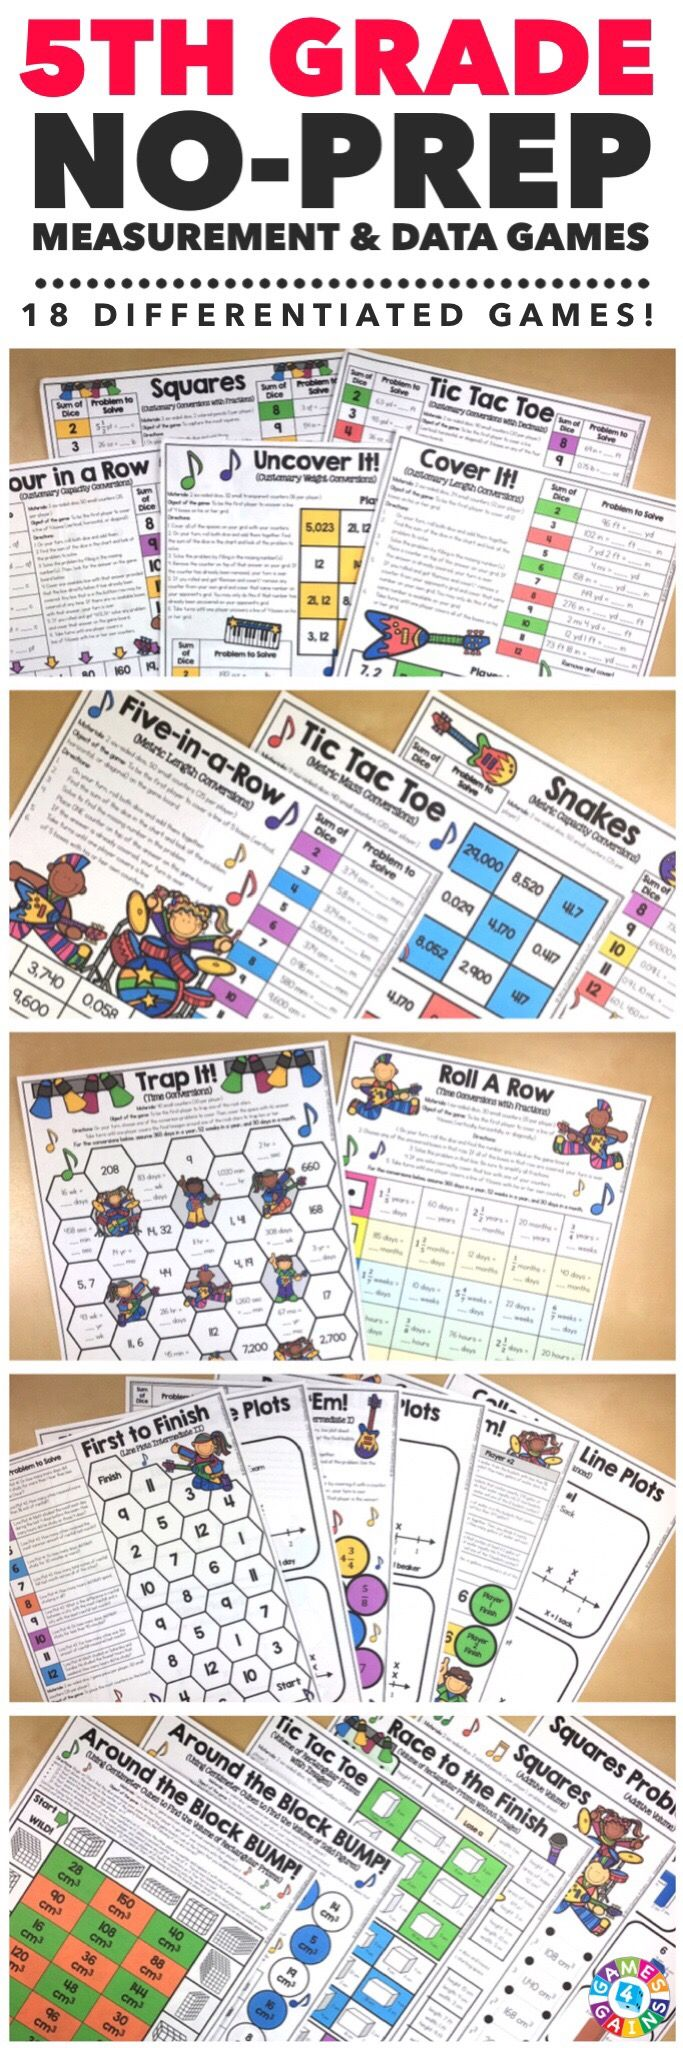 """""""Kids are LOVING these games during rotation time to reinforce standards."""" This 5th Grade Measurement & Data Games Pack includes 18 differentiated games for practicing customary measurement conversions, metric measurement conversions, time conversions, line plots, volume, and additive volume.  These games support the 5th grade CCSS measurement & data standards!"""